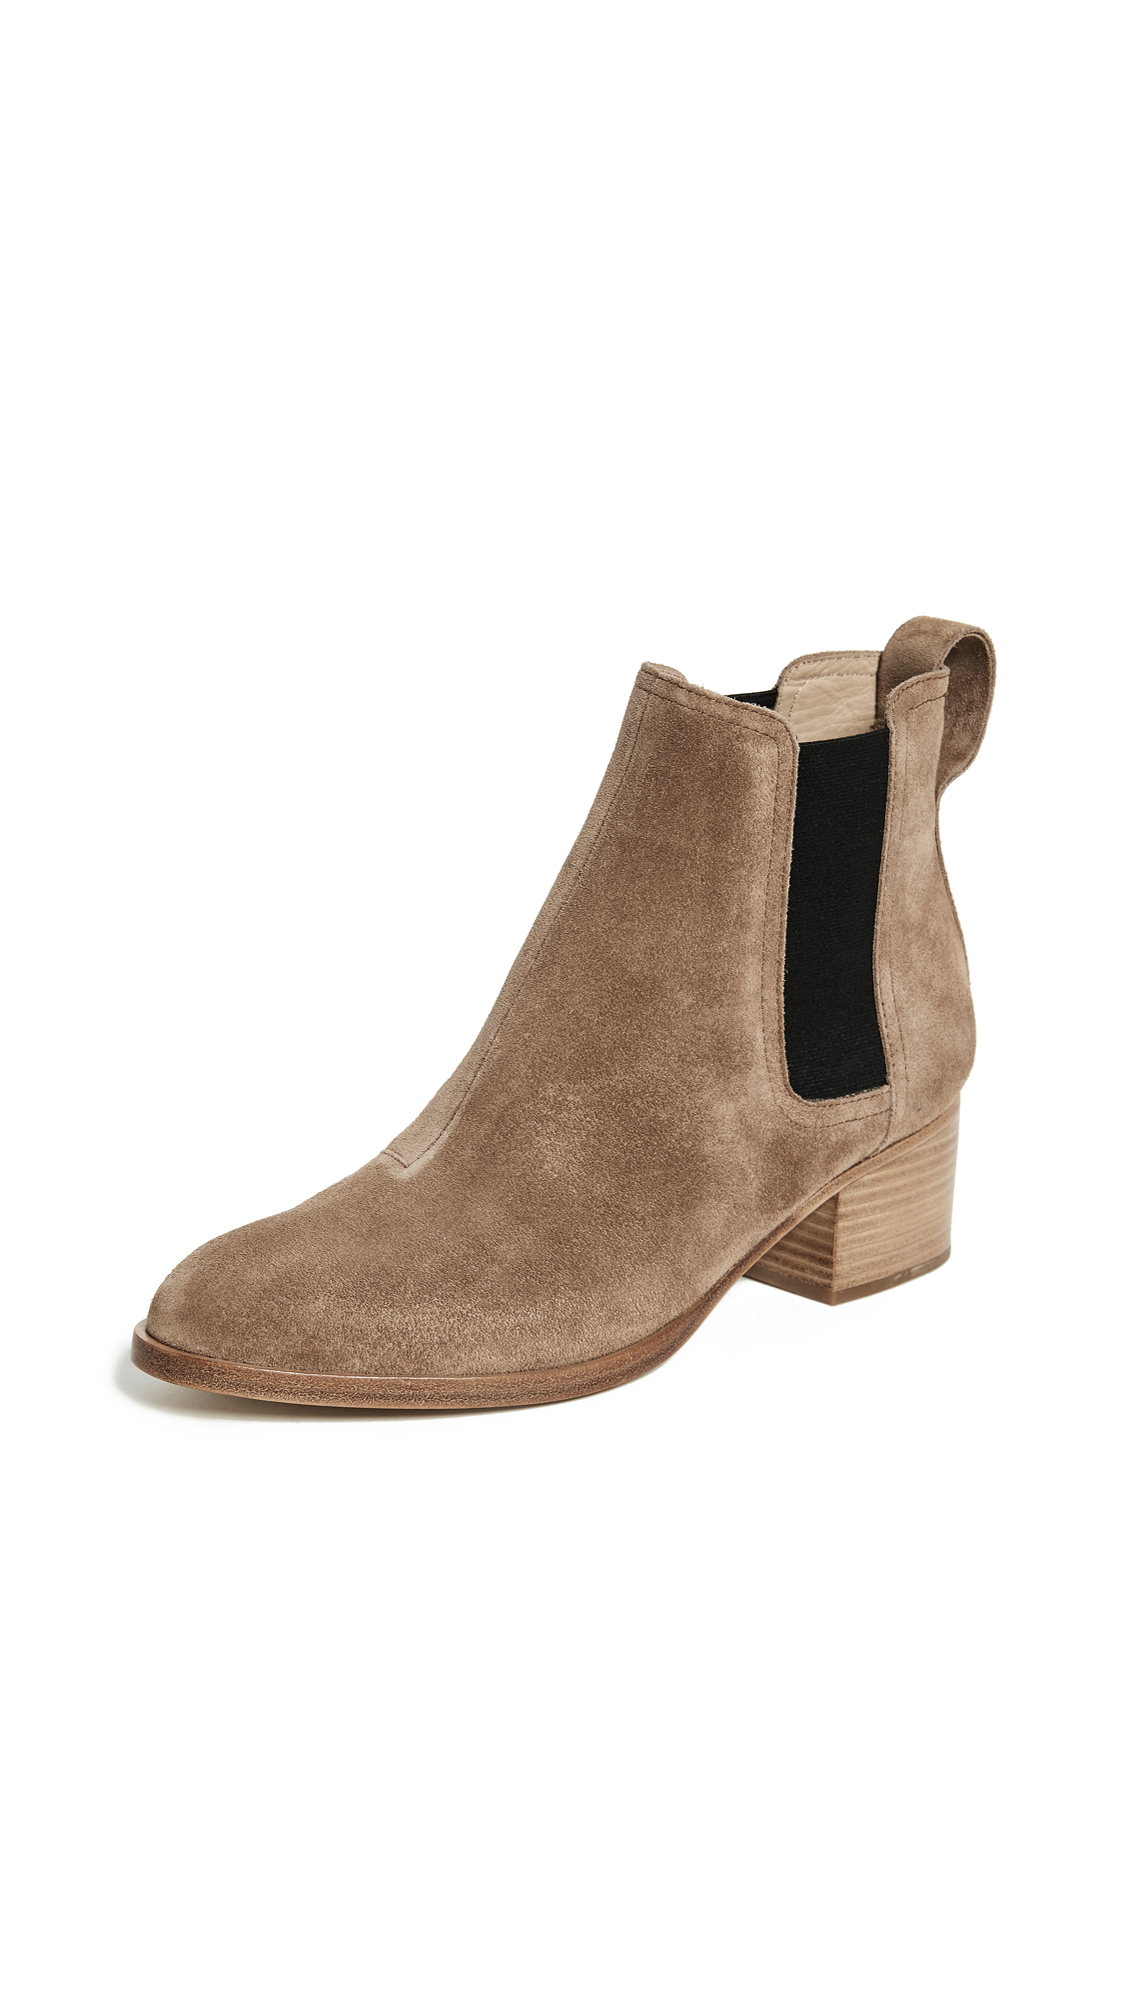 Rag & Bone Walker Booties - Camel